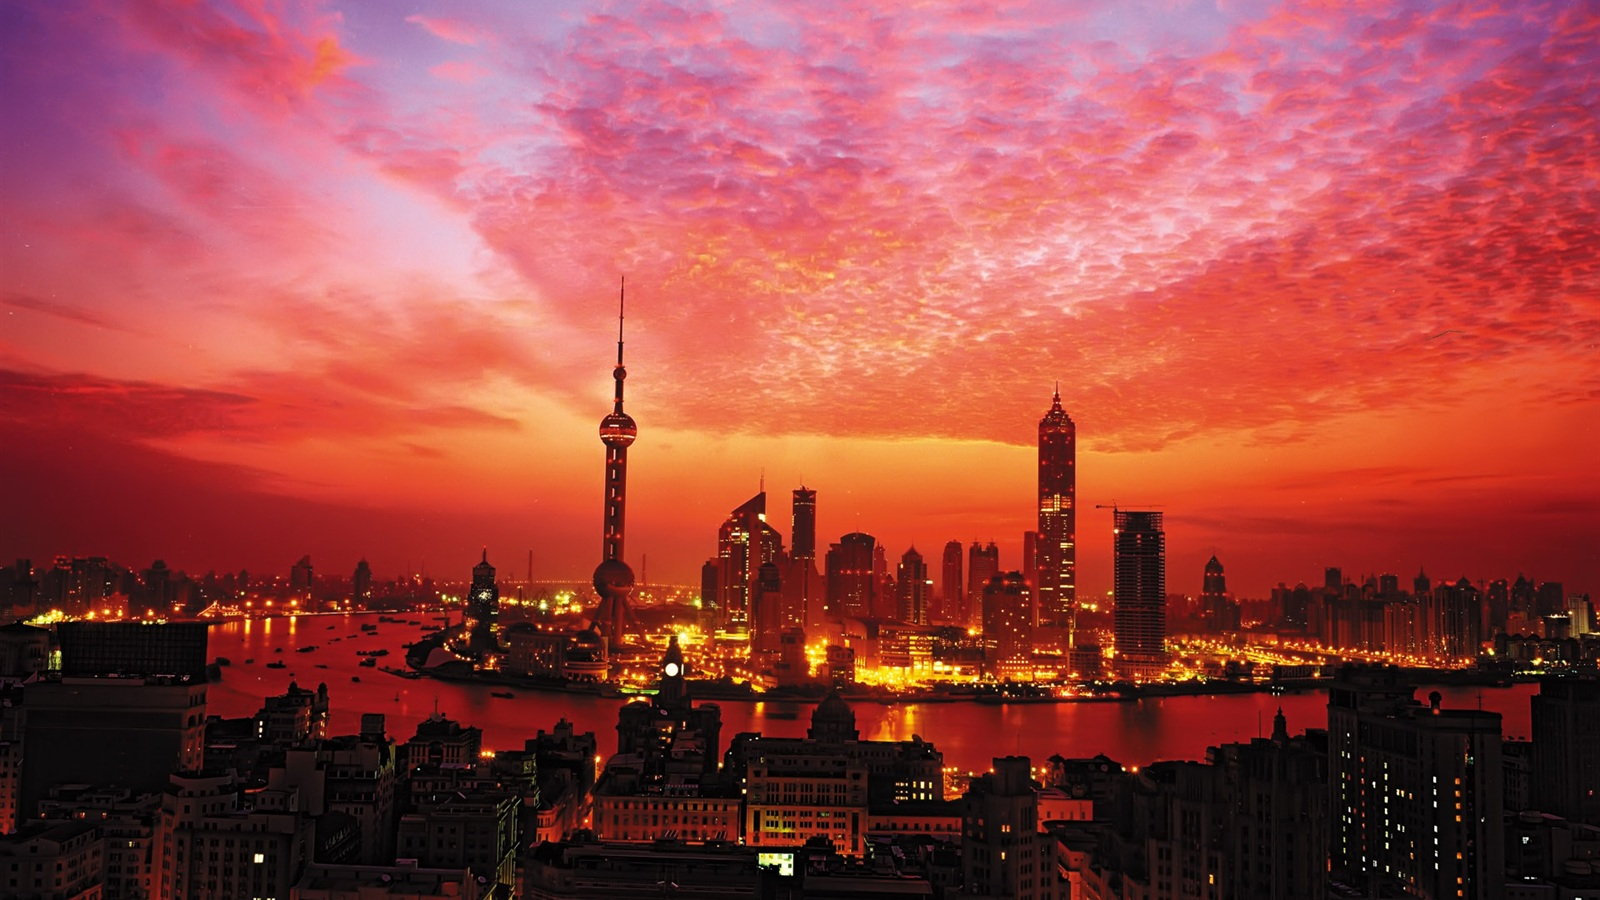 wallpaper sunset in shanghai 1920x1200 hd picture image